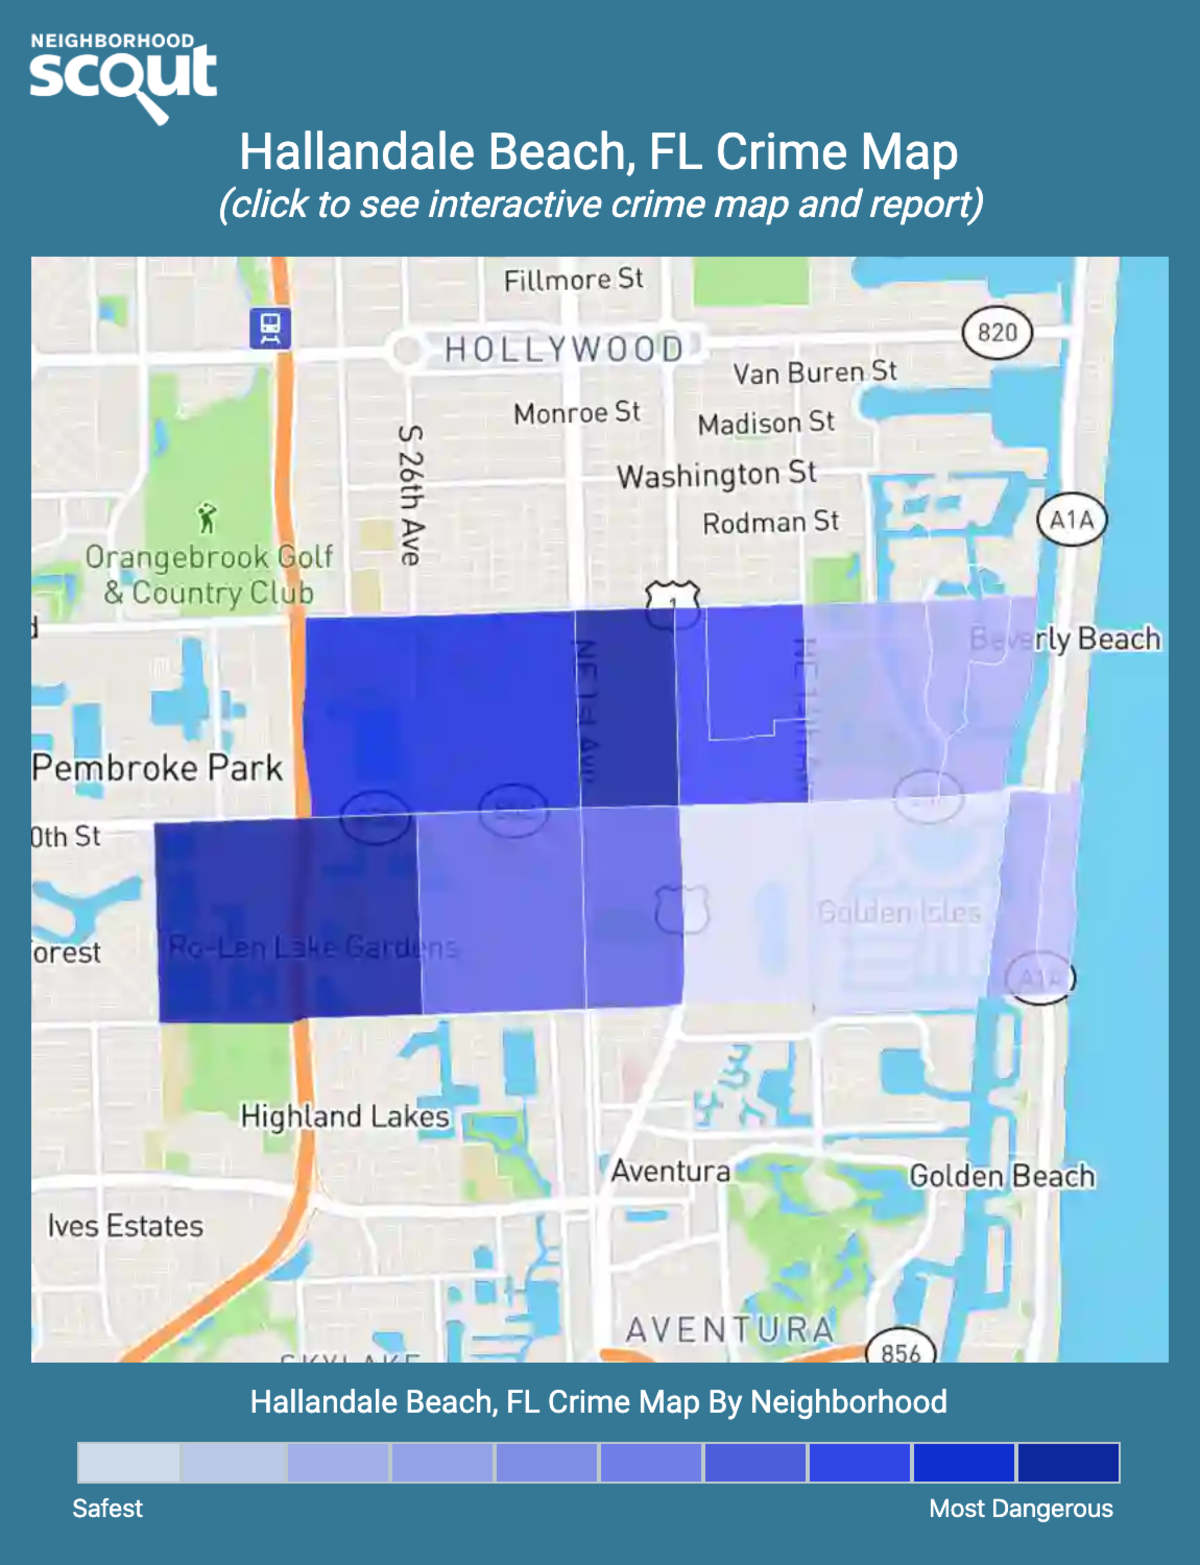 Hallandale Beach, Florida crime map